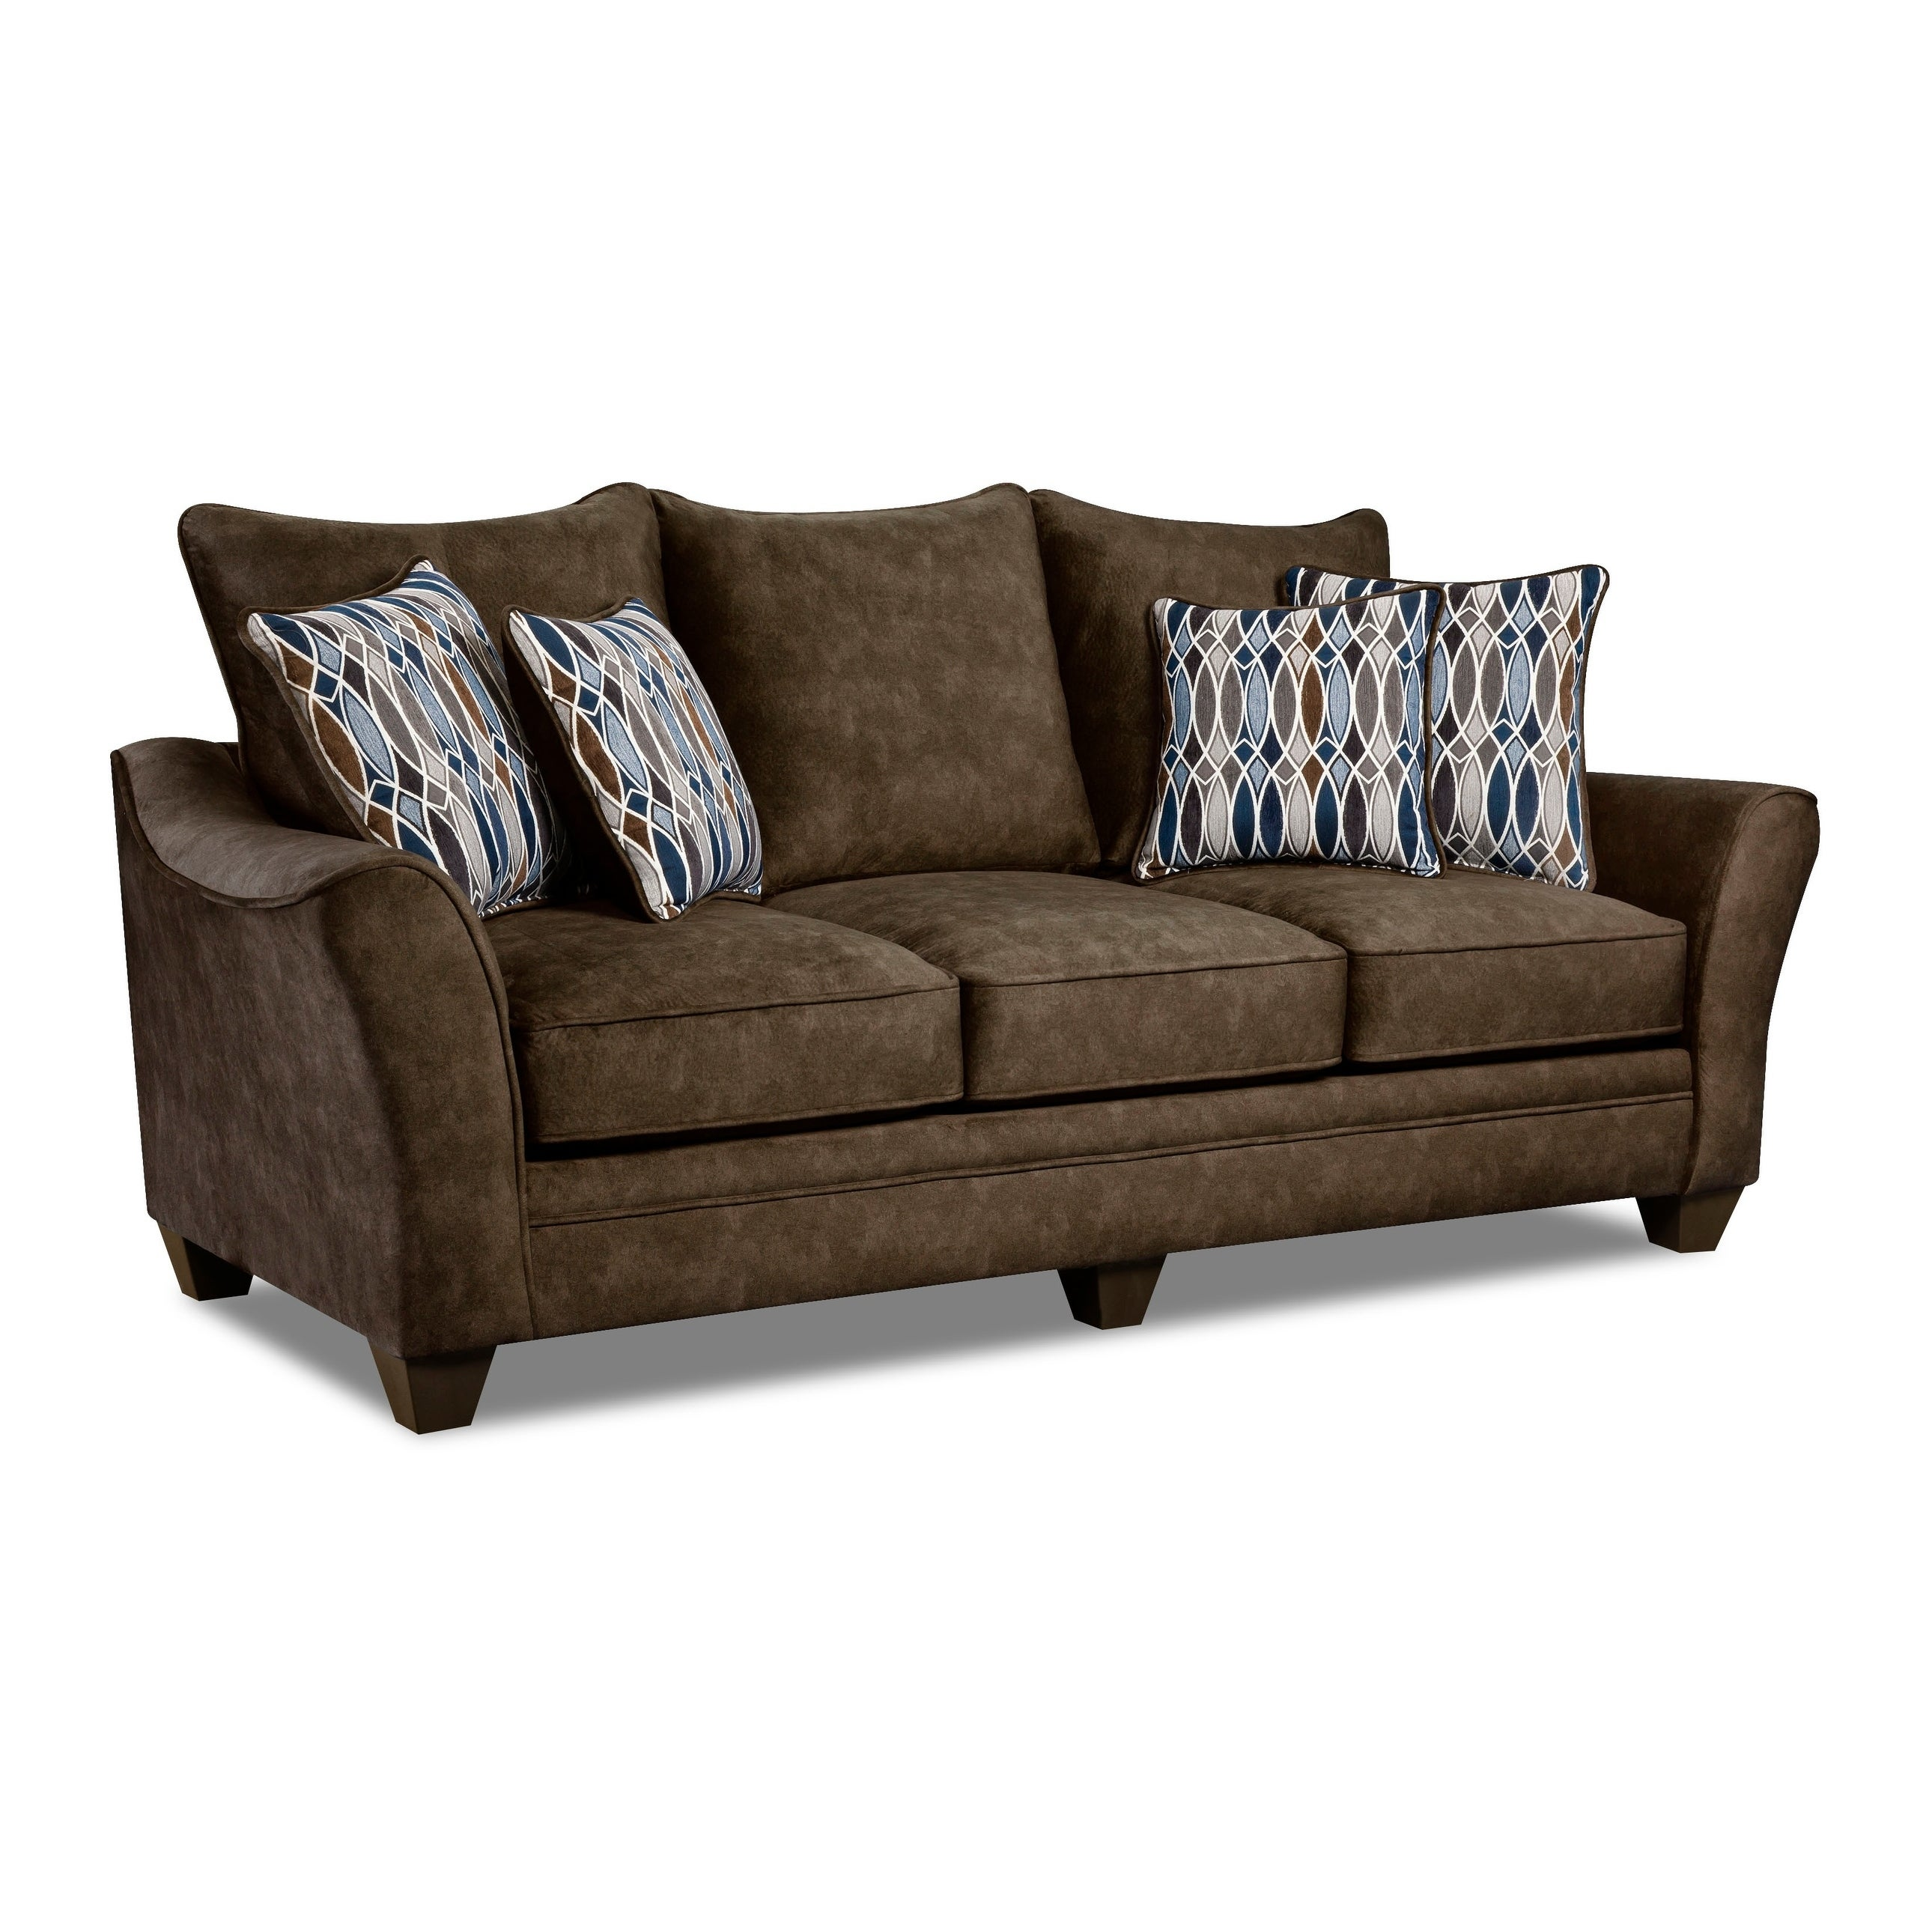 Wondrous Check These Amazing Brown Suede Sofa Photos Itsnatalie Com Pdpeps Interior Chair Design Pdpepsorg